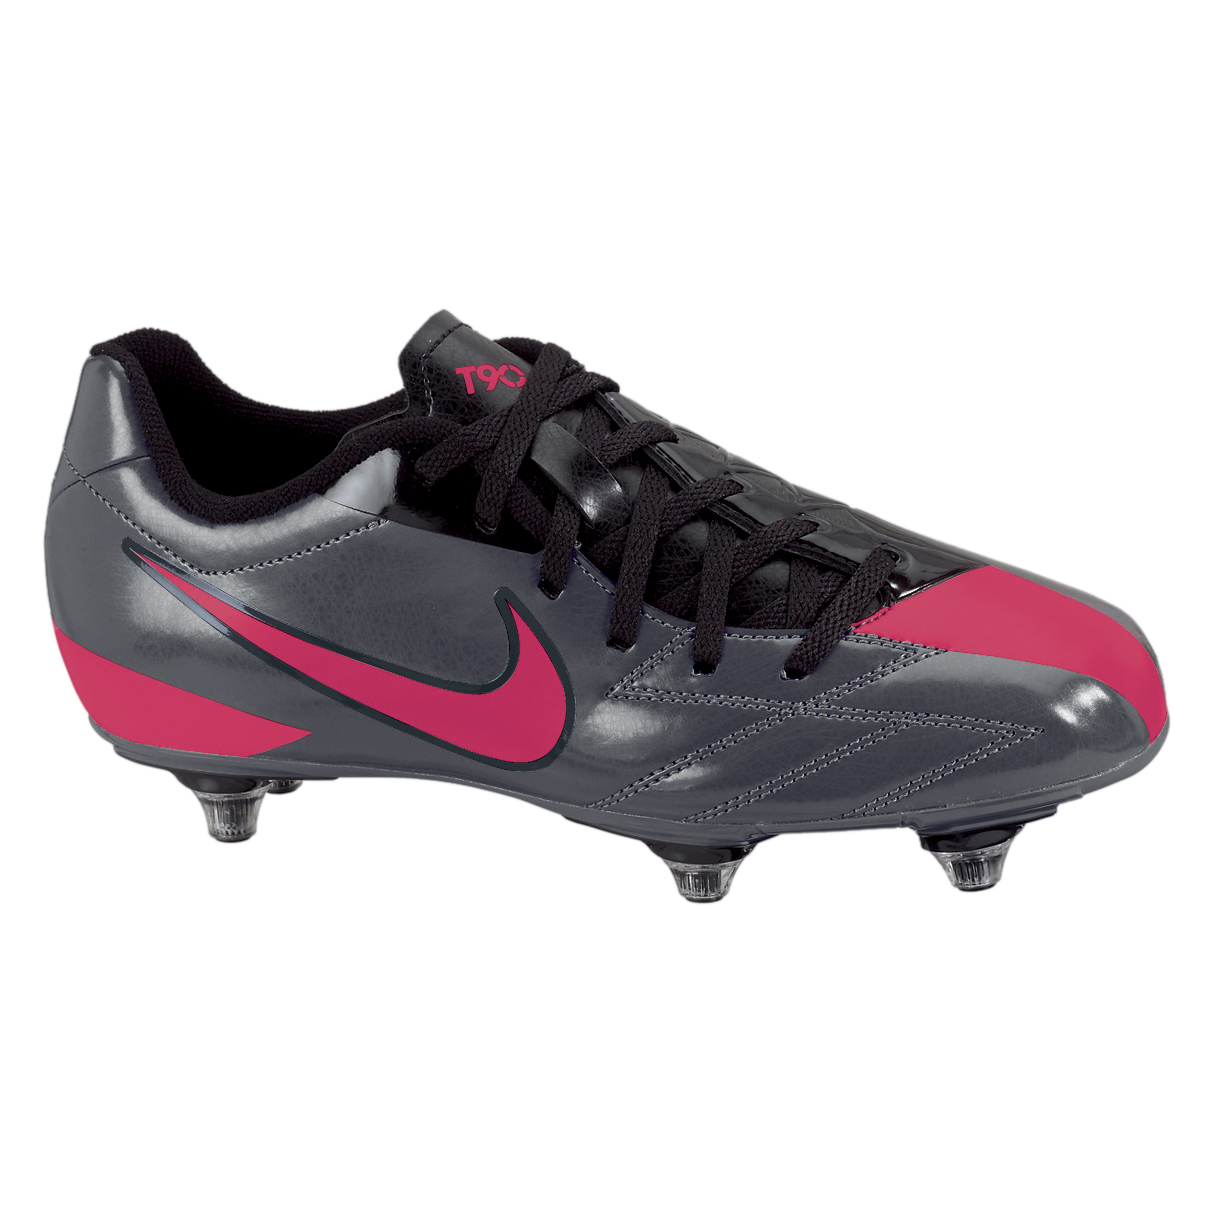 Nike T90 Shoot IV Soft Ground Football Boots - Dark Grey/Solar Red/Black - Kids